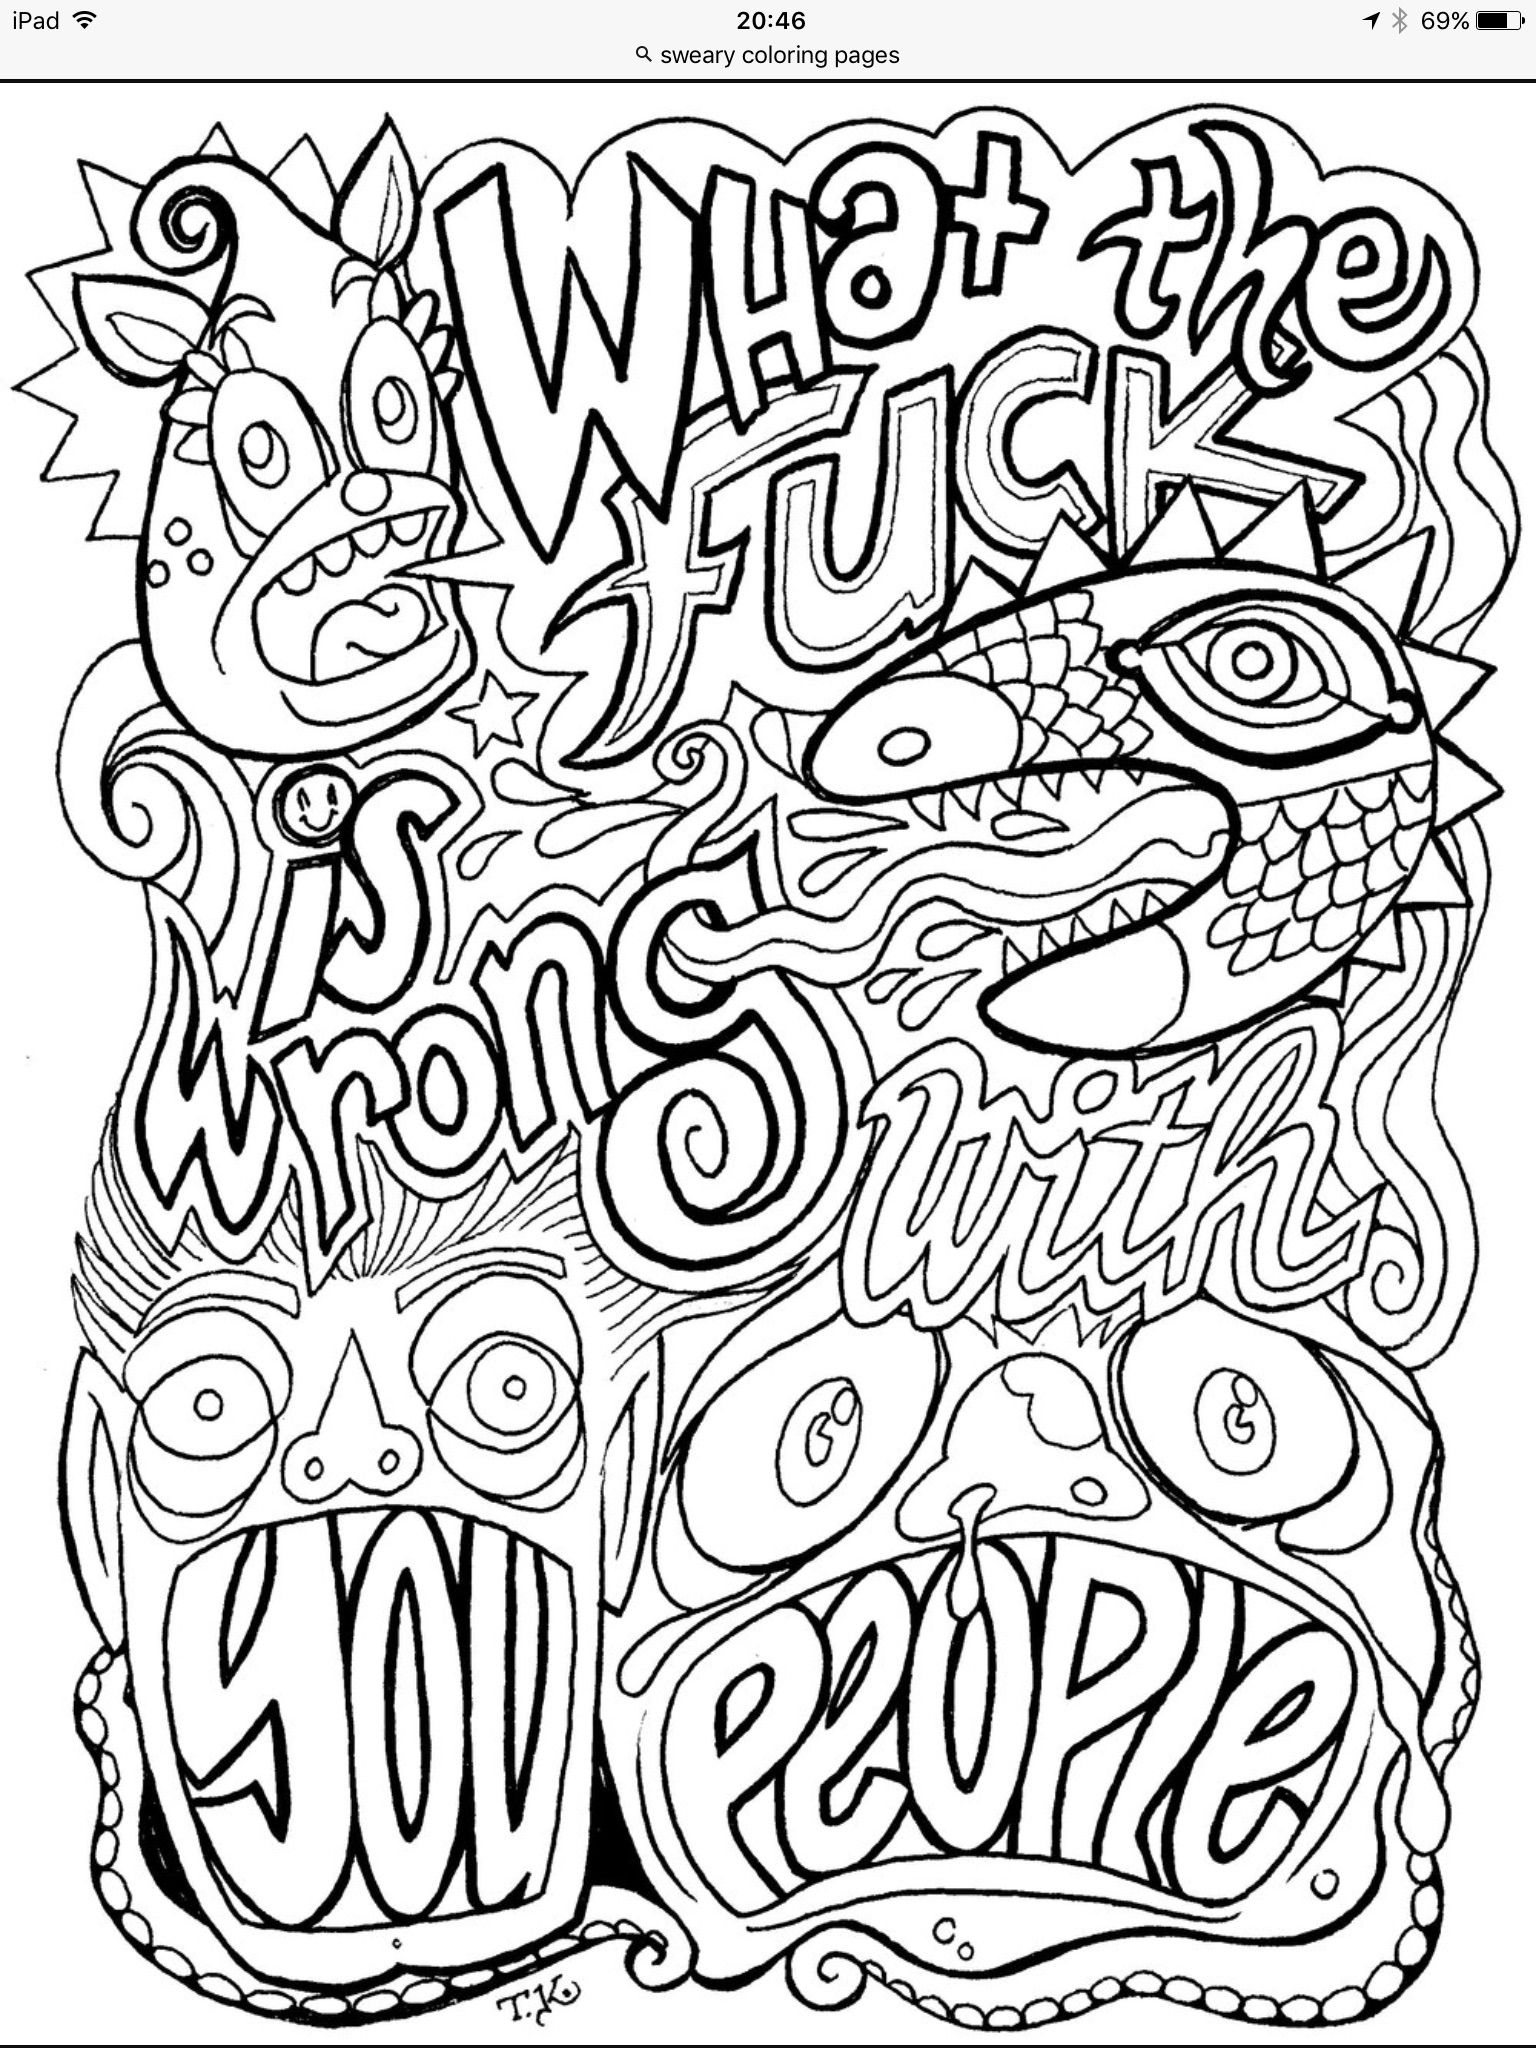 Pin By Mary Van De Ven On Coloring Book Words Coloring Book Adult Coloring Books Swear Coloring Pages